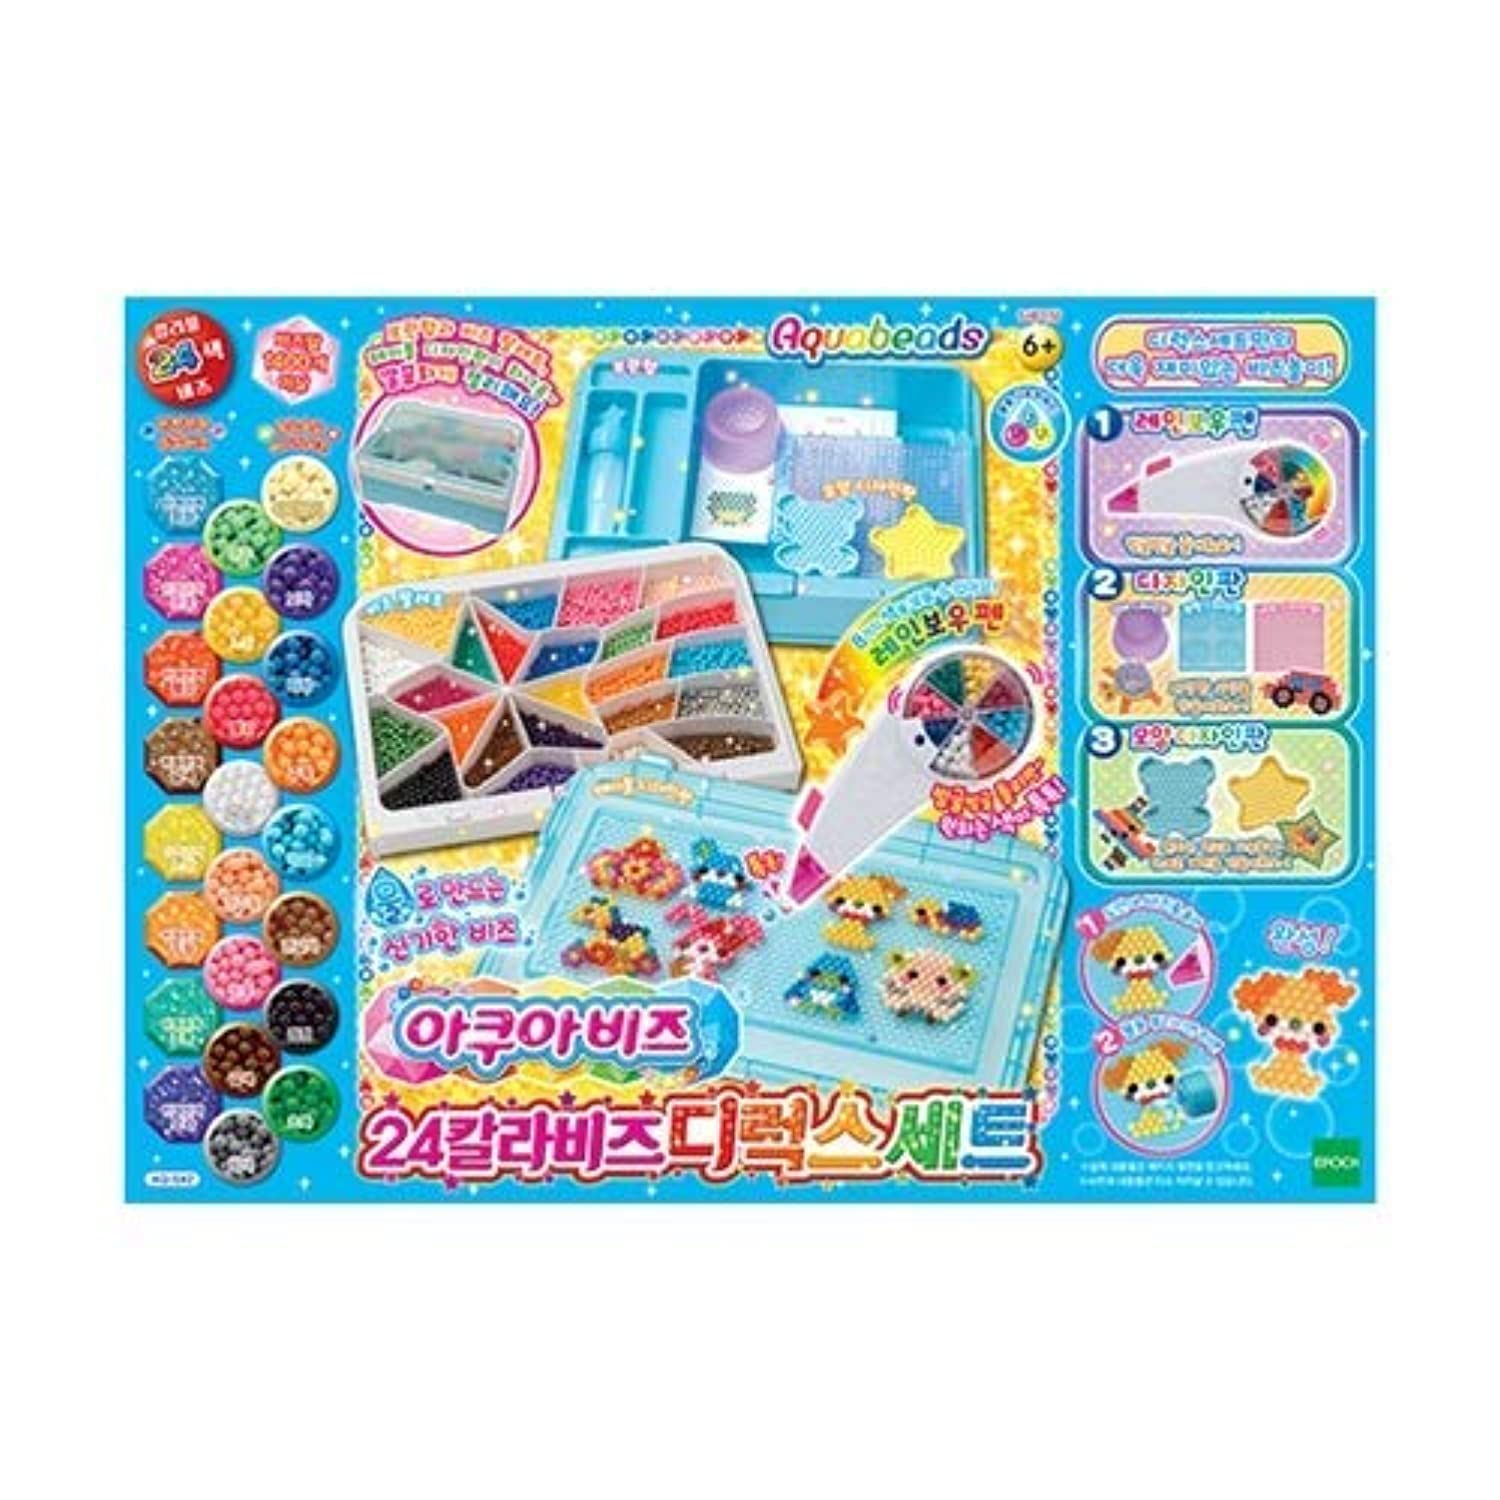 Toytron Aquabeads 24 Colors Beads Deluxe Set 子供のおもちゃ [並行輸入品]